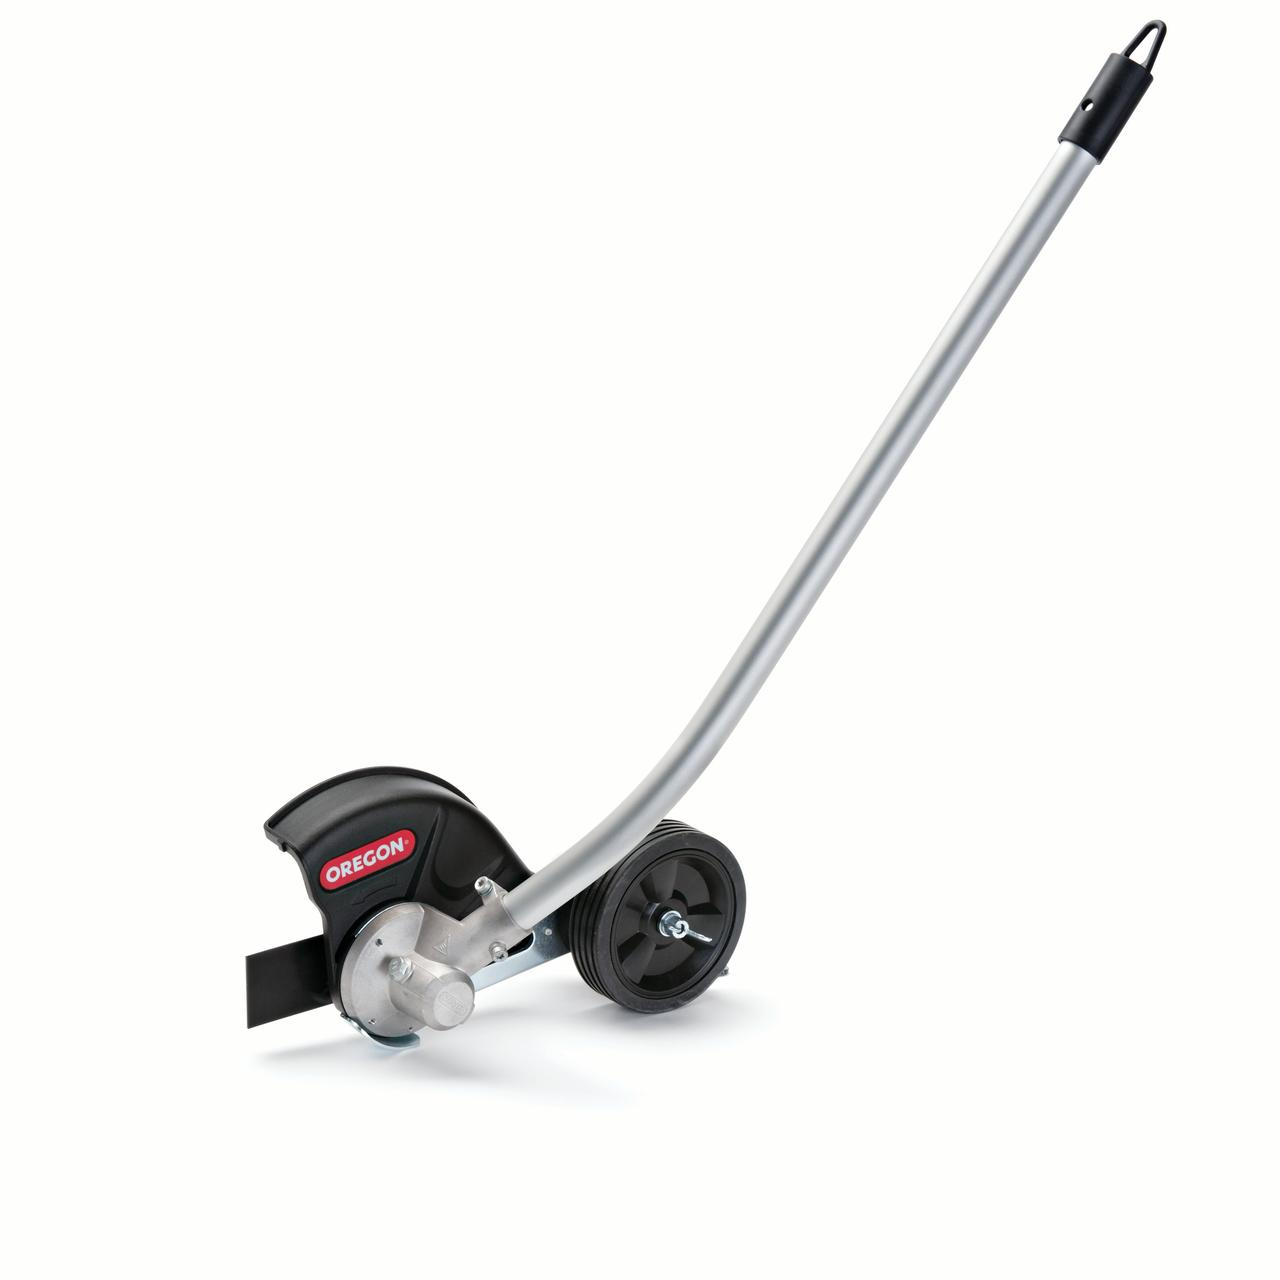 Oregon 590989 40V MAX Multi-Attachment Edger (no powerhead, battery, or charger) by Blount Inc